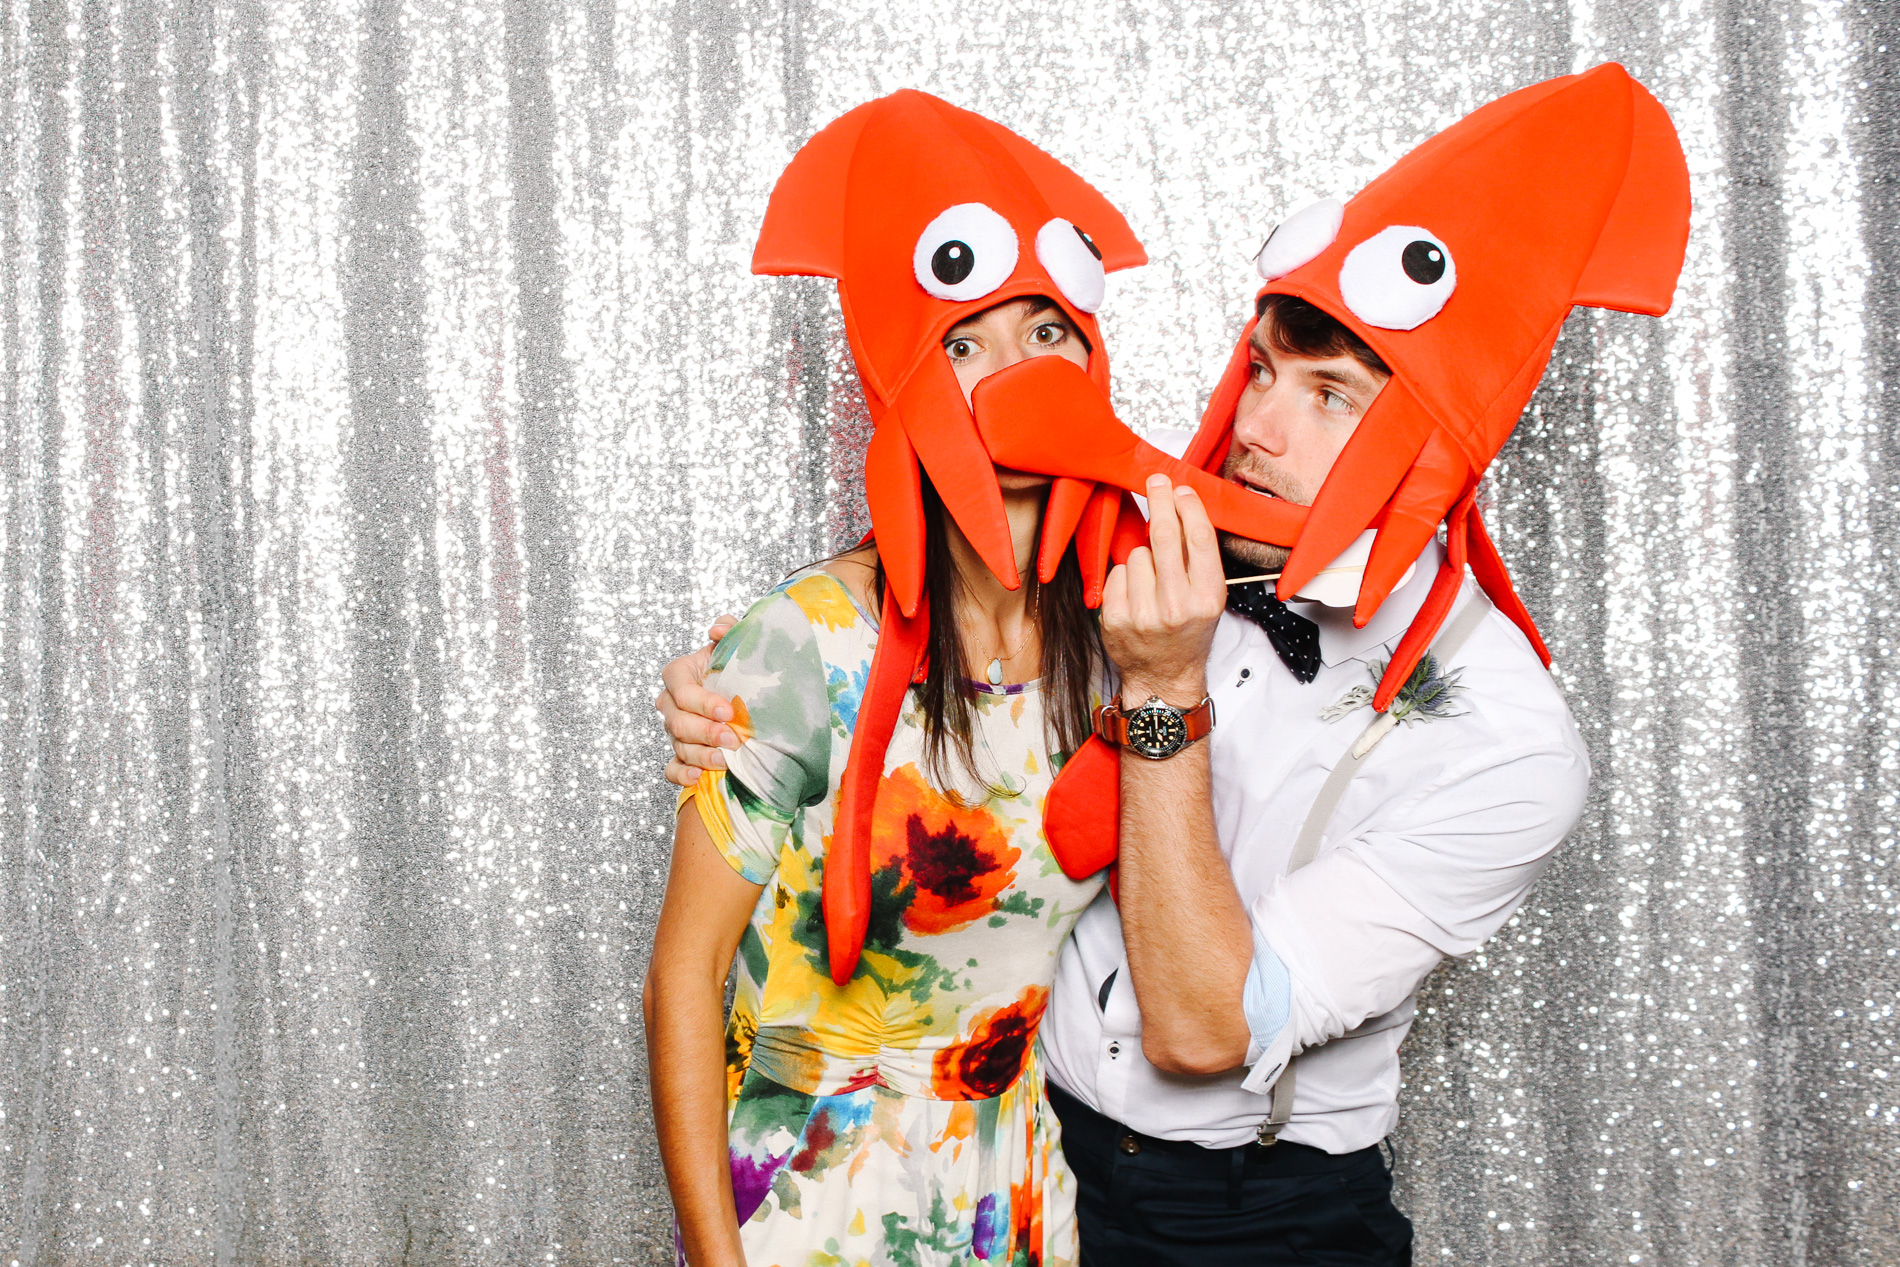 grin-and-bear-booth-photobooth-184605.jpg